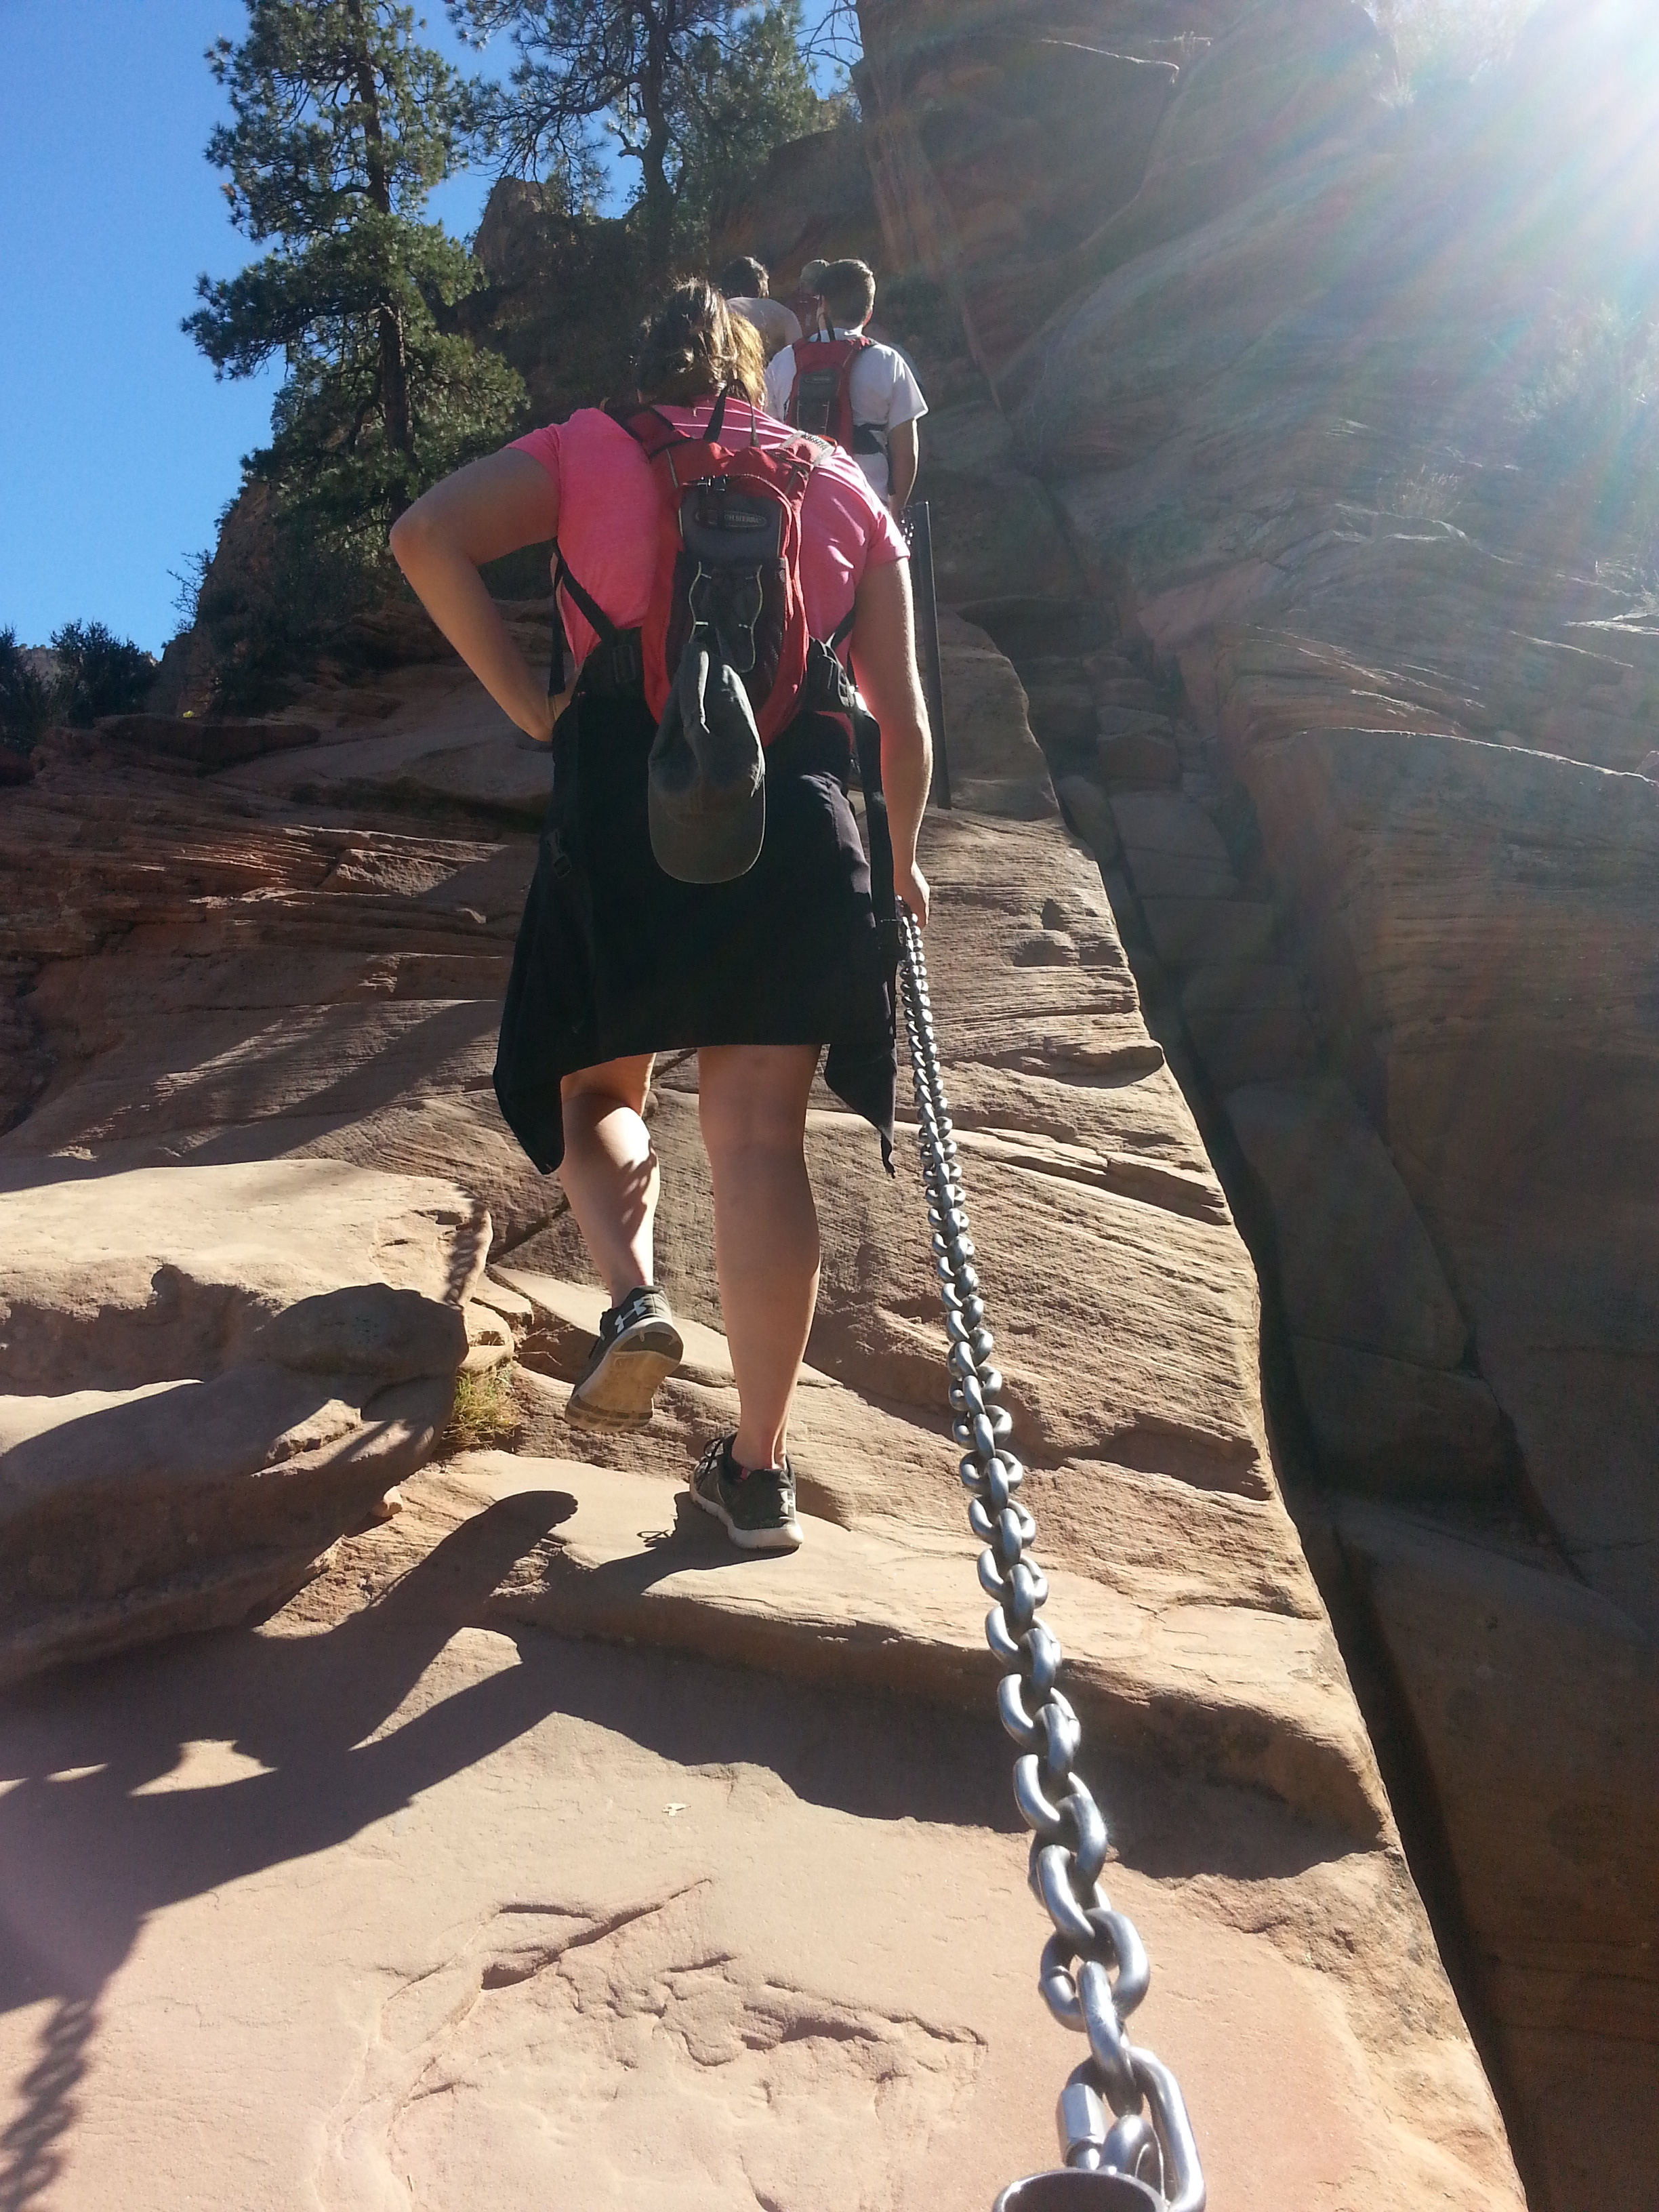 Up up you go while holding on to the chains for .6 miles each way to reach the perch of Angels Landing!